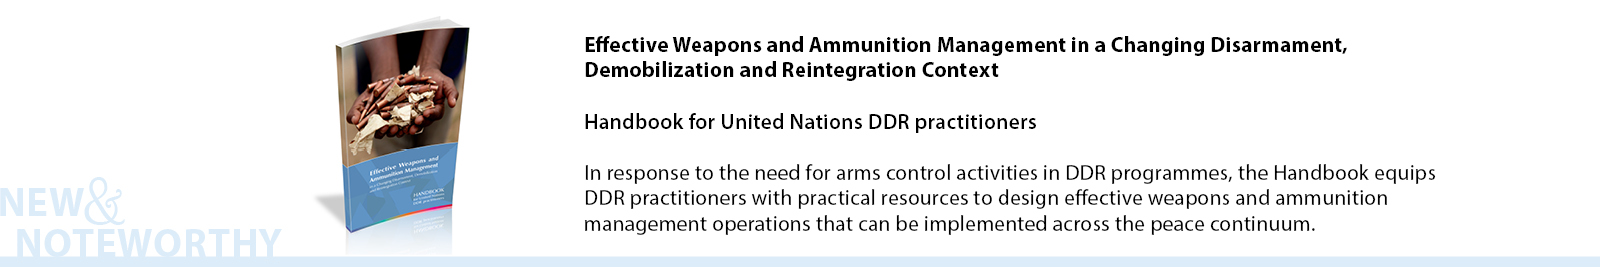 Effective Weapons and Ammunition Management in a Changing Disarmament, Demobilization and Reintegration Context - Handbook for United Nations DDR practitioners - In response to the need for arms control activities in DDR programmes, the Handbook equips DDR practitioners with practical resources to design effective weapons and ammunition management operations that can be implemented across the peace continuum.